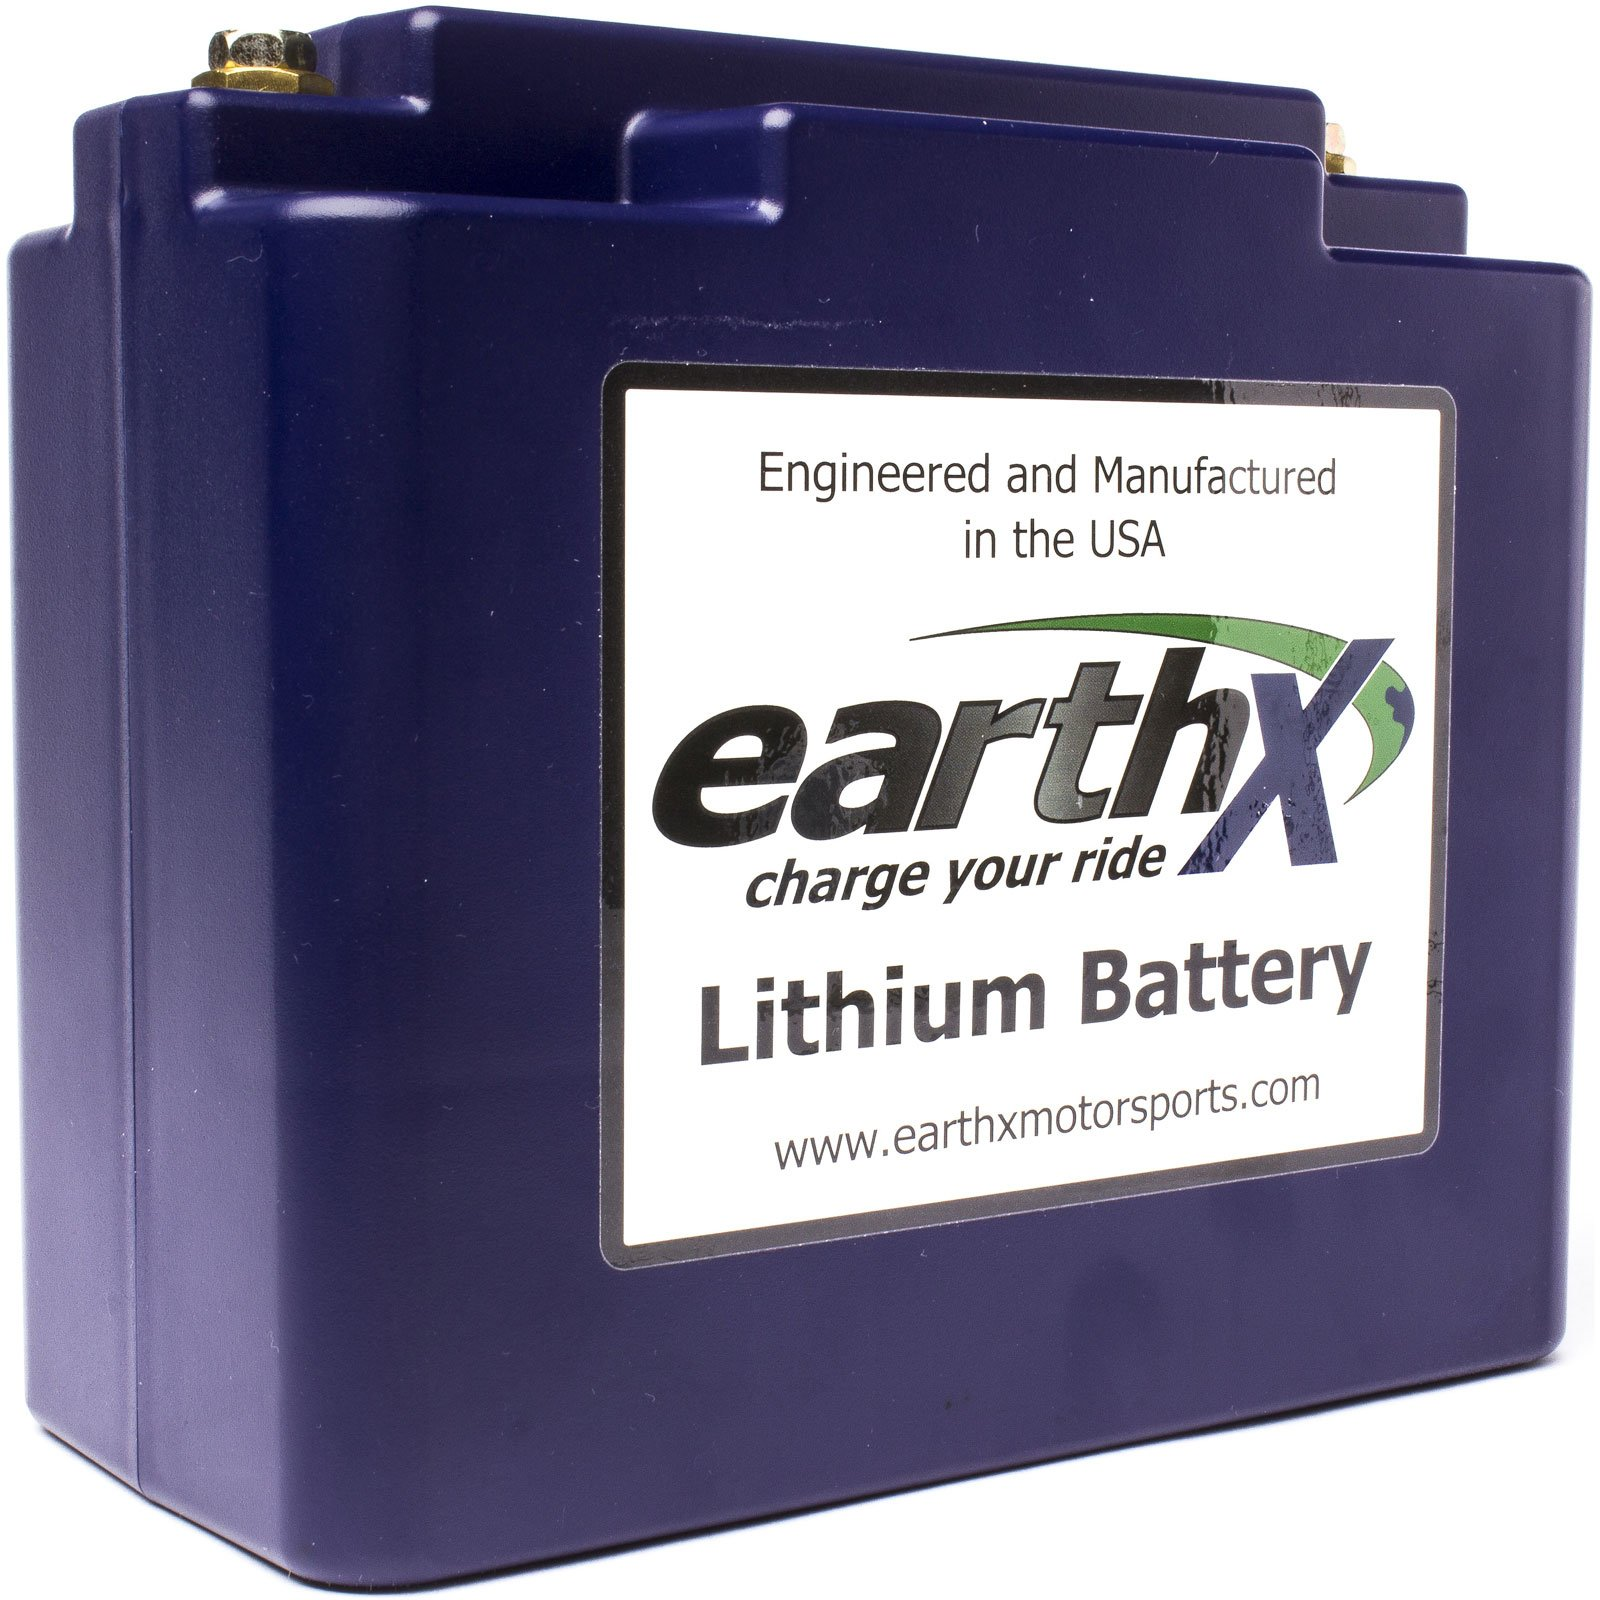 Earthx Etx36d Lithium Battery Free Shipping Batterymart Com